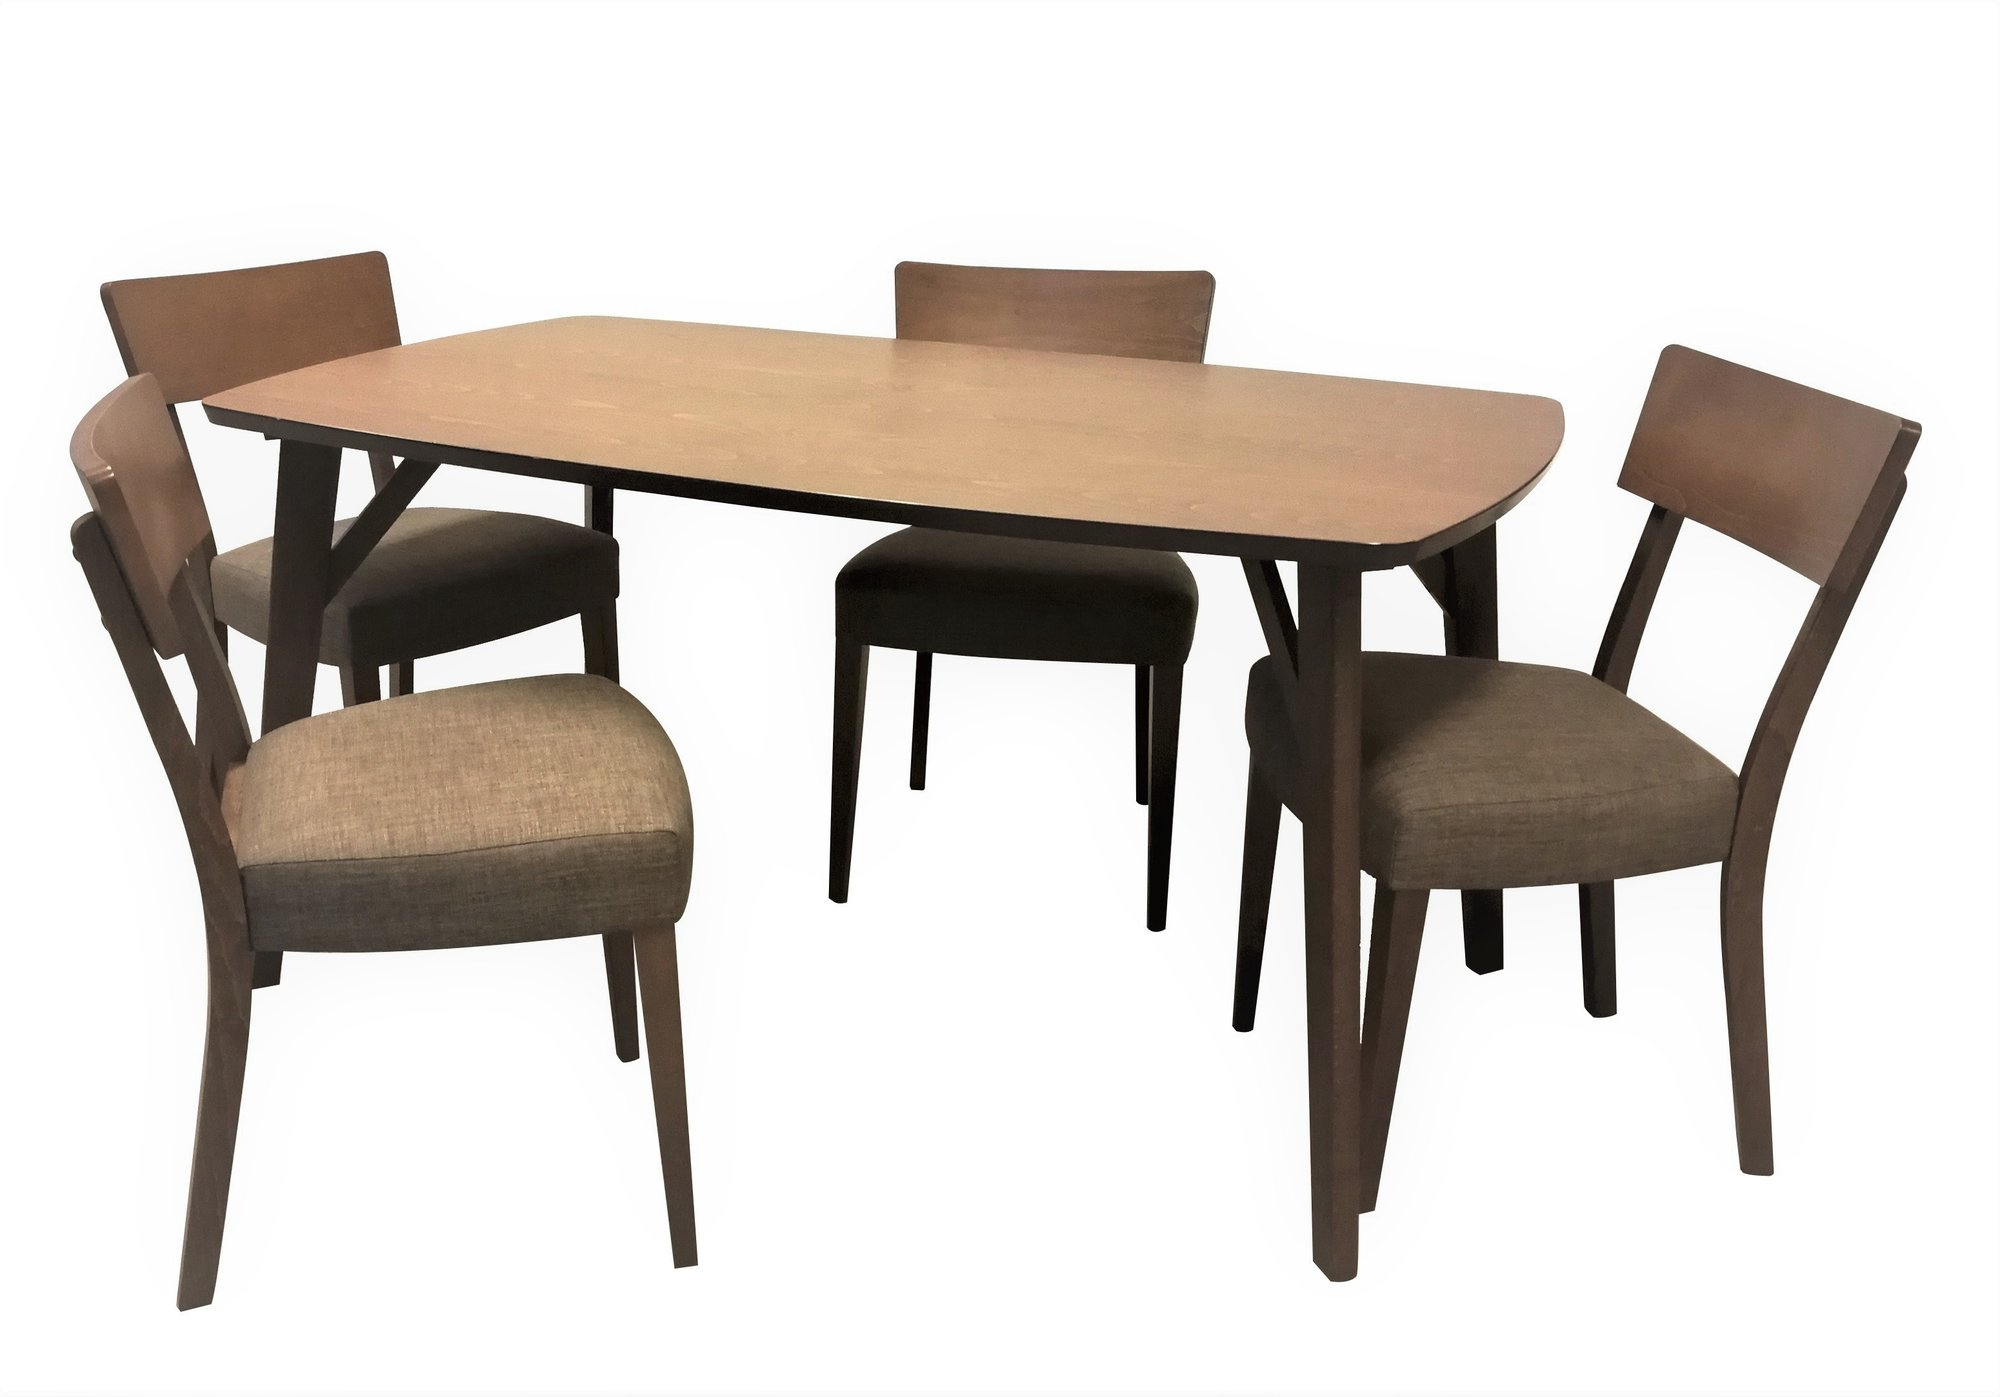 Popular Details About George Oliver Crompton 5 Piece Breakfast Nook Dining Set Regarding 5 Piece Breakfast Nook Dining Sets (View 14 of 20)